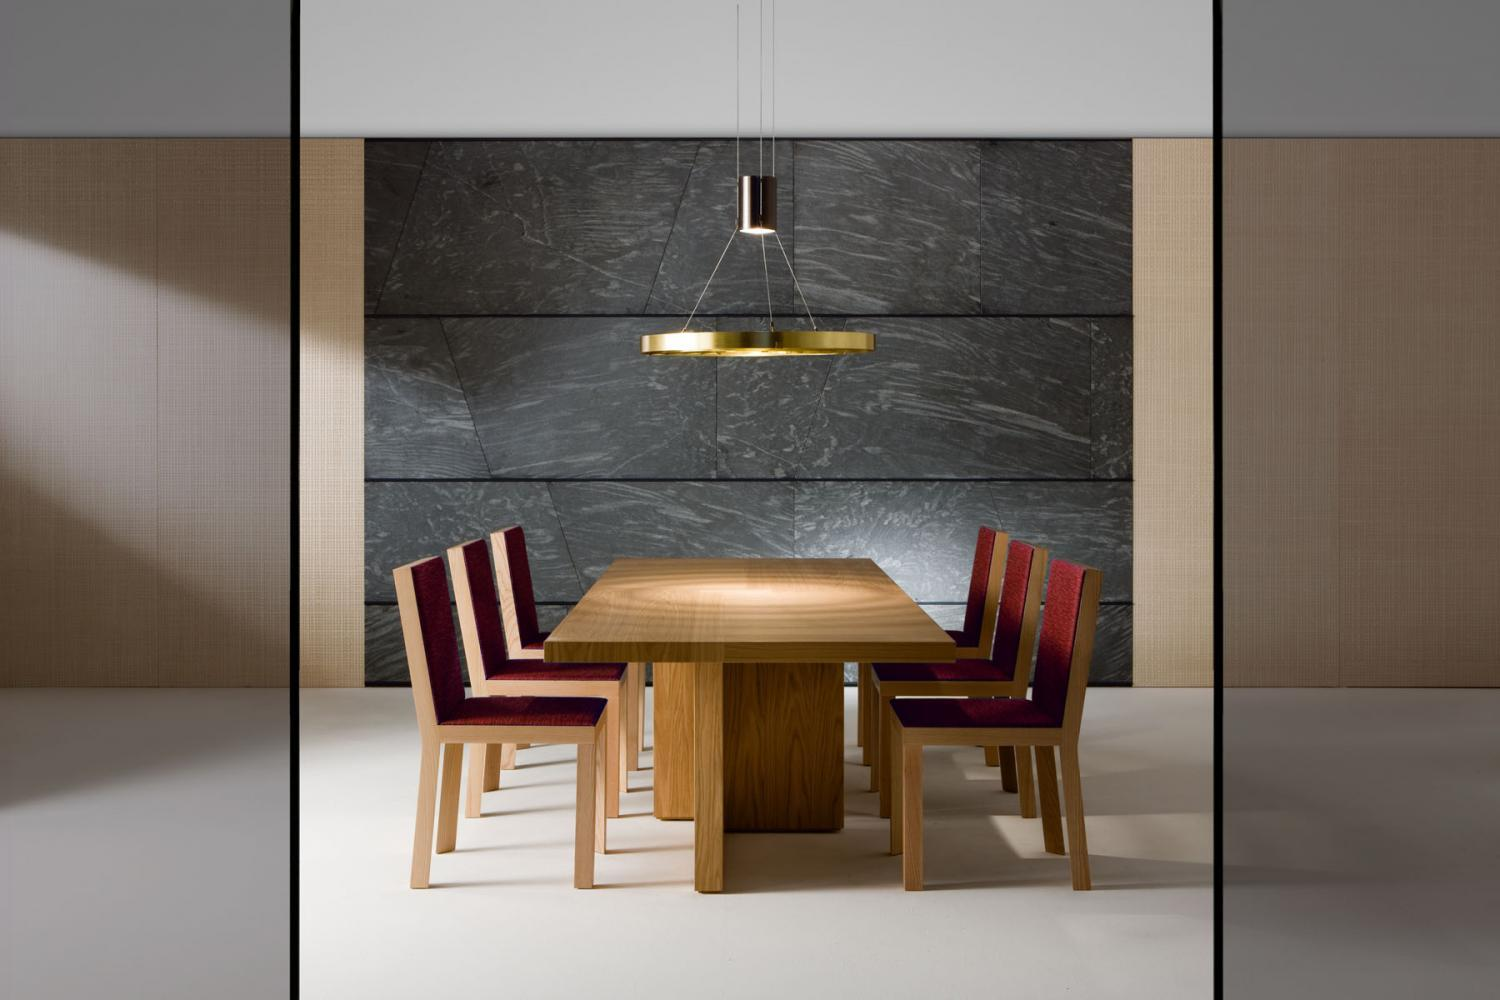 Laurameroni luxury modern made to measure wooden tables for contemporary interior decor and design